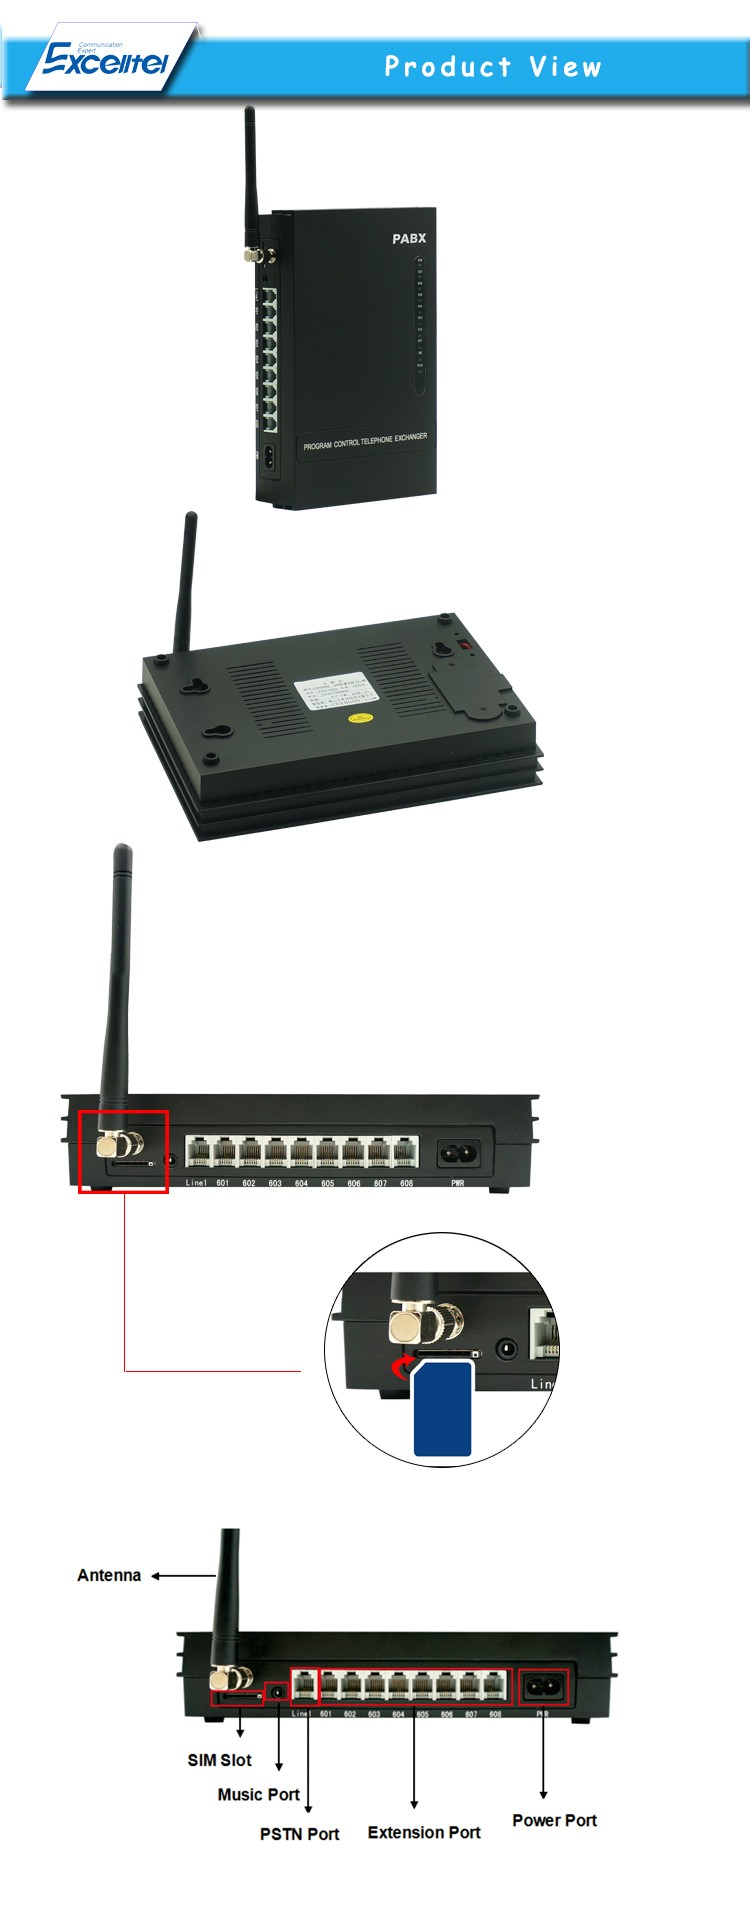 Gsm Pabx Pbx Telephone Exchange System With Sim Card Ms108-gsm ...